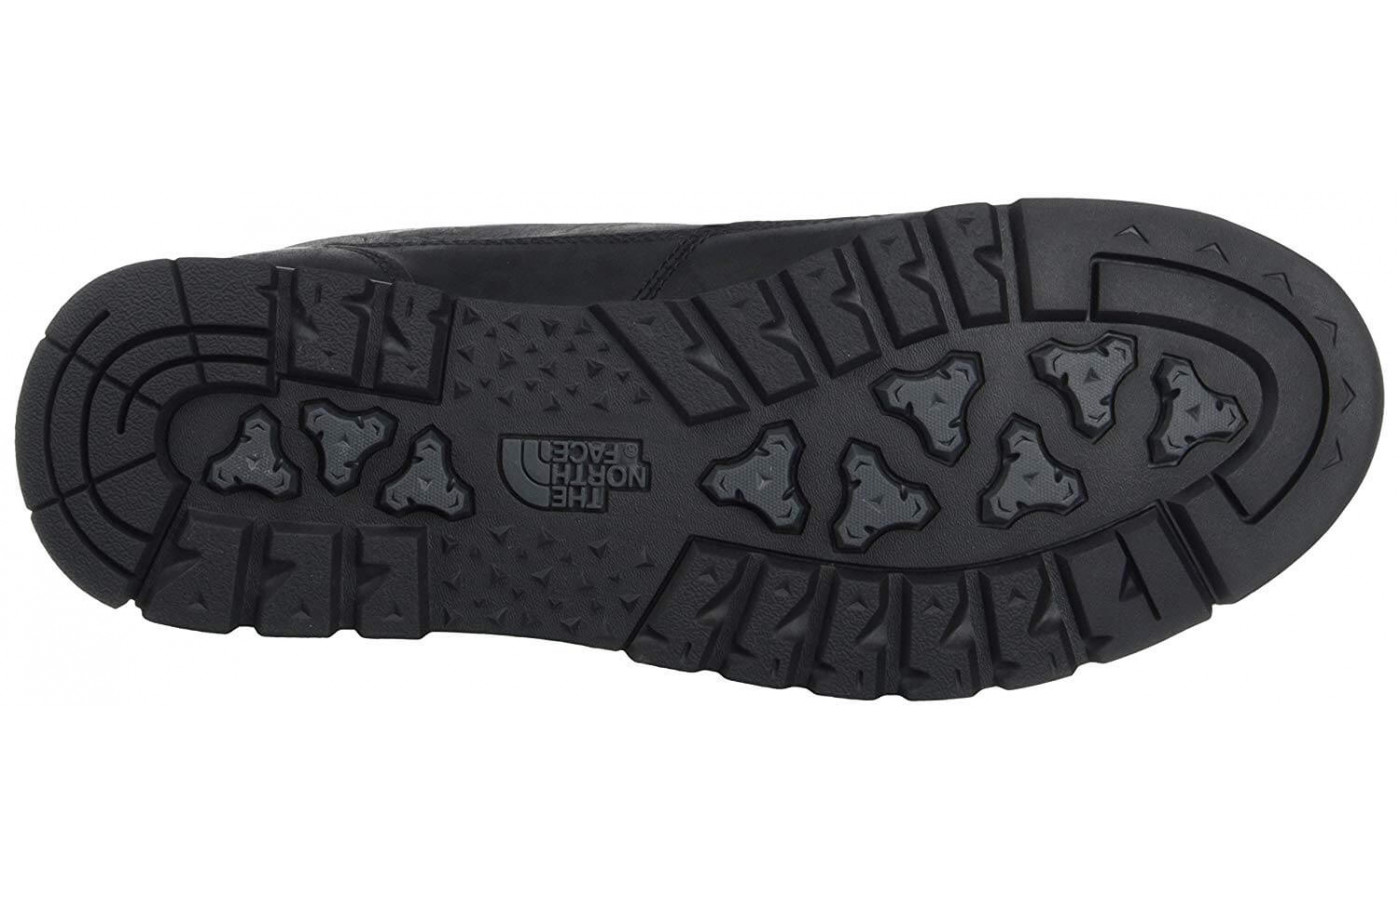 TNF Winter Grip rubber constructs the Back-to-Berkeley Redux's outsole